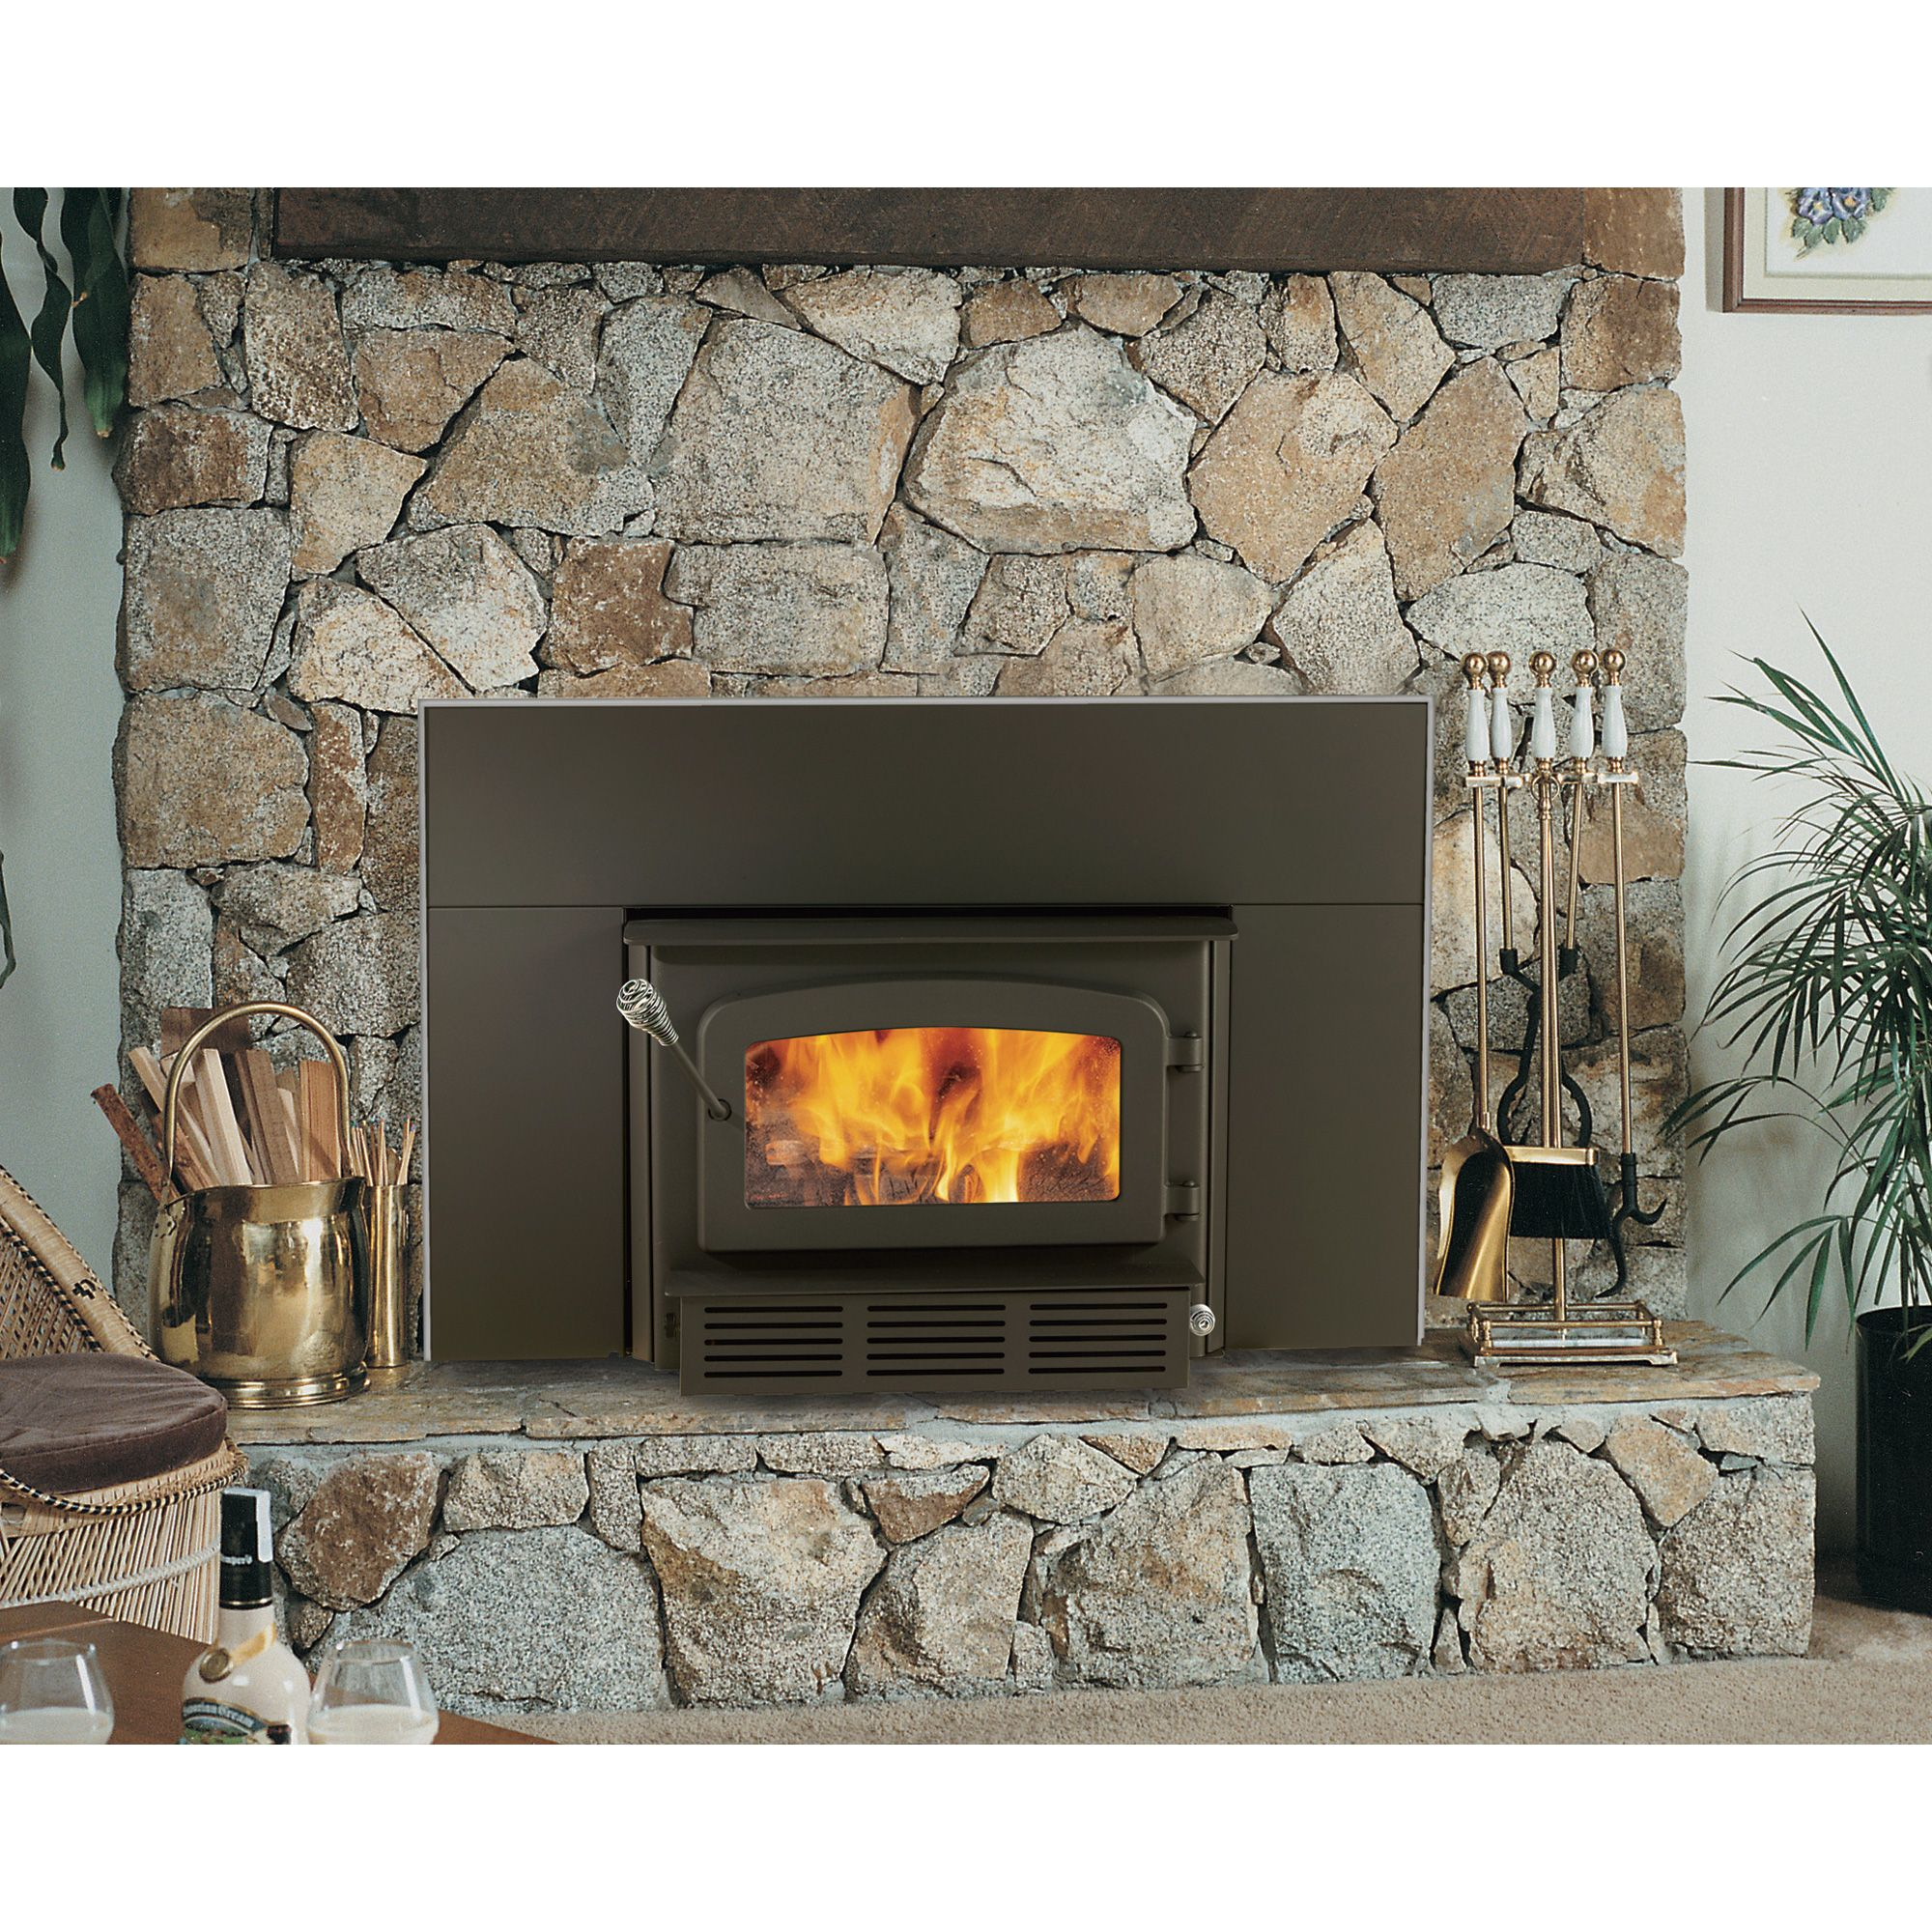 Fireplace Gas Fireplace Cost To Convert High Efficiency Wood Convert Your Costly Inefficient Masonry Fireplace With